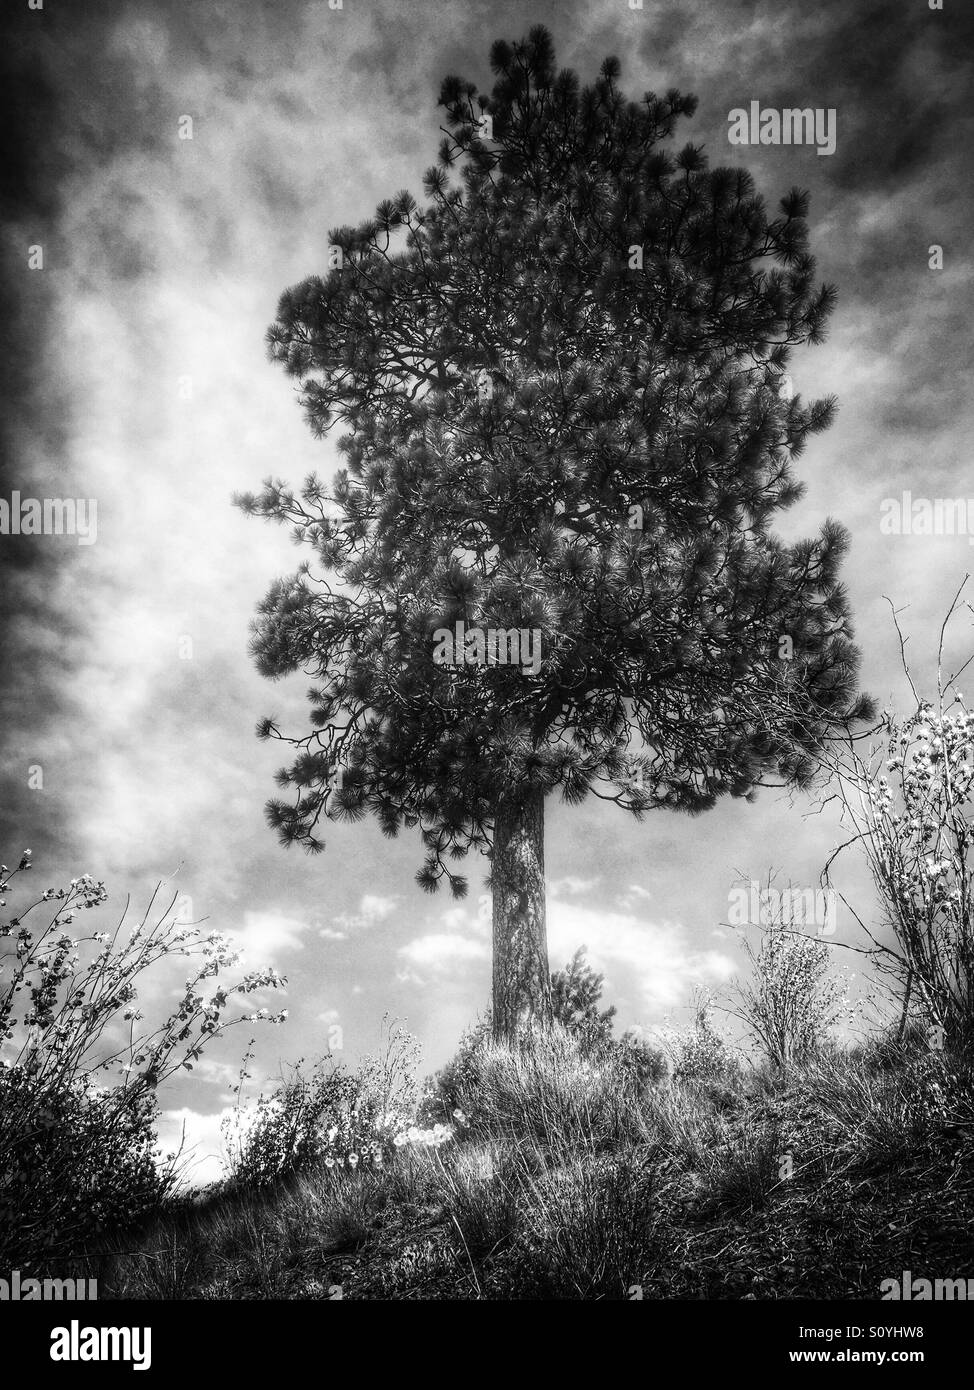 A lone pine tree standing on a hillside against a cloudy sky. In black and white. - Stock Image